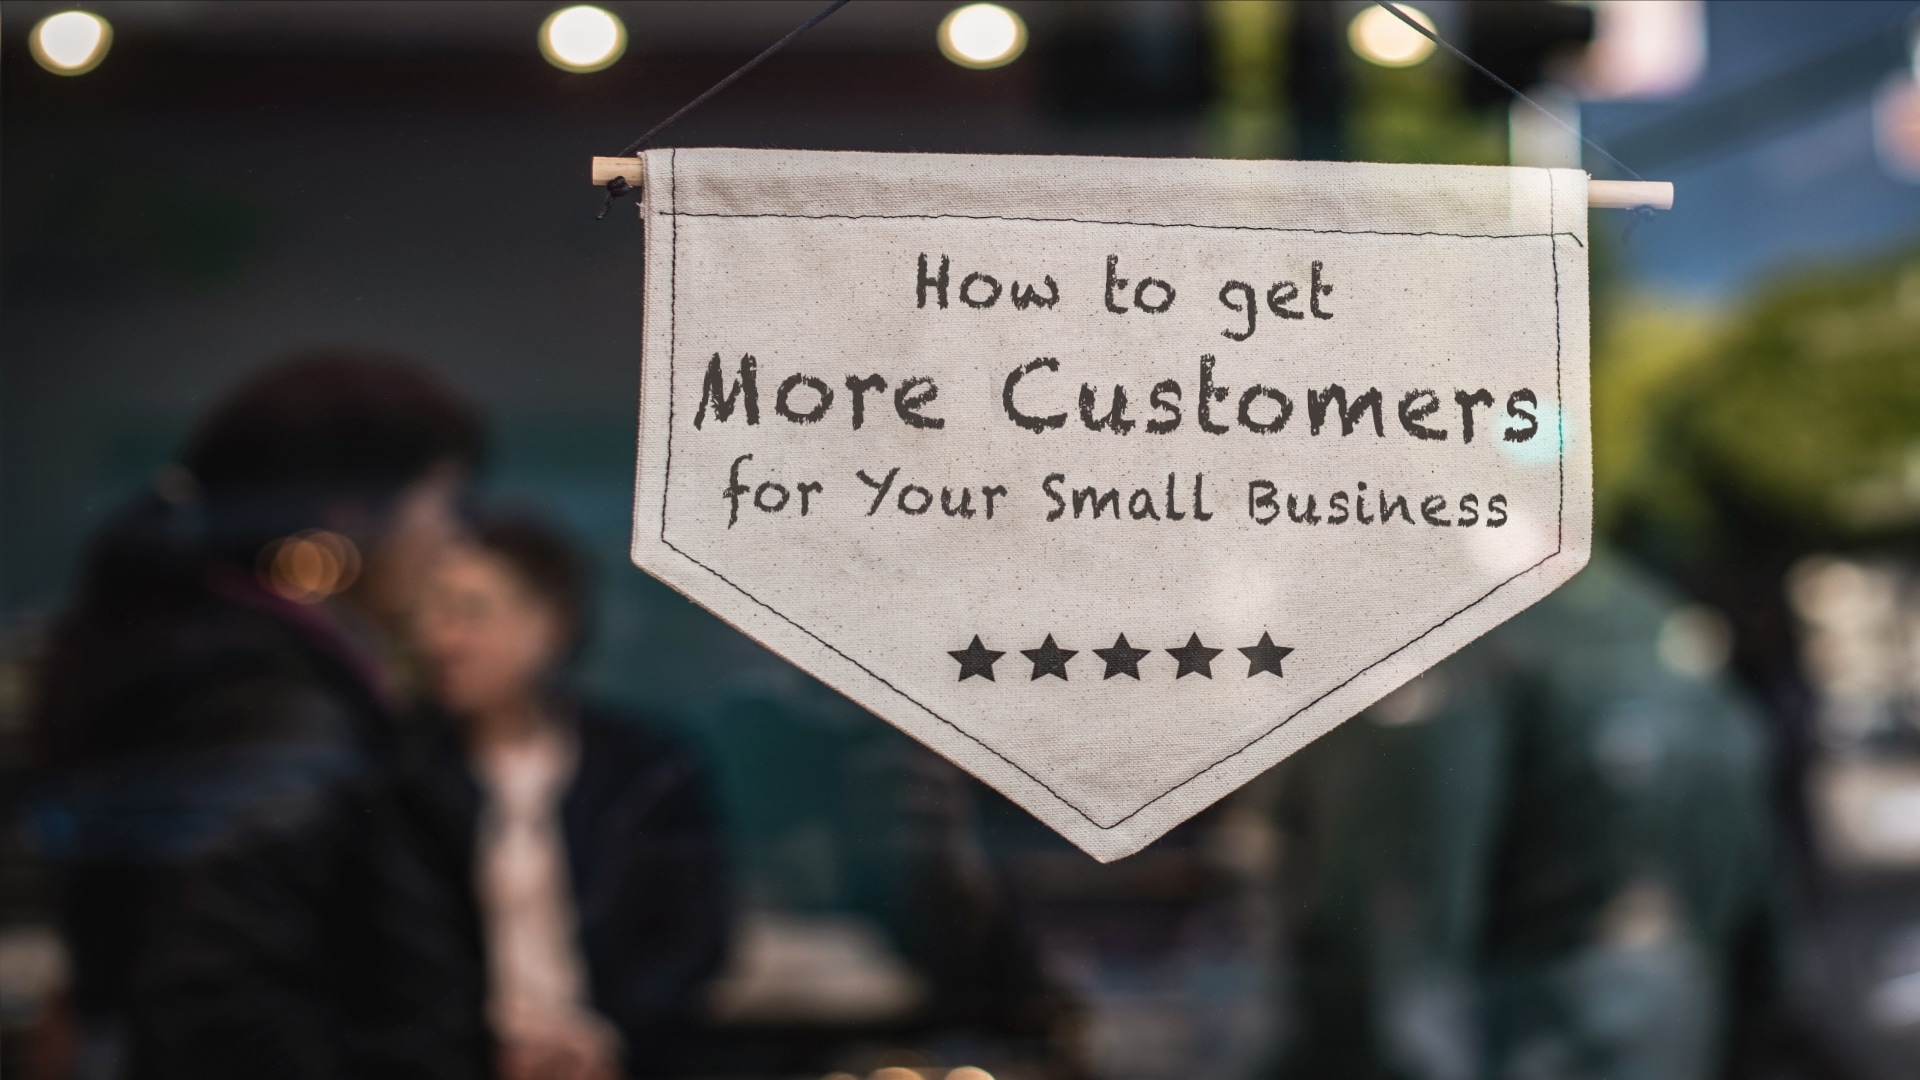 Best Ways to Get More Customers for Your Small Business